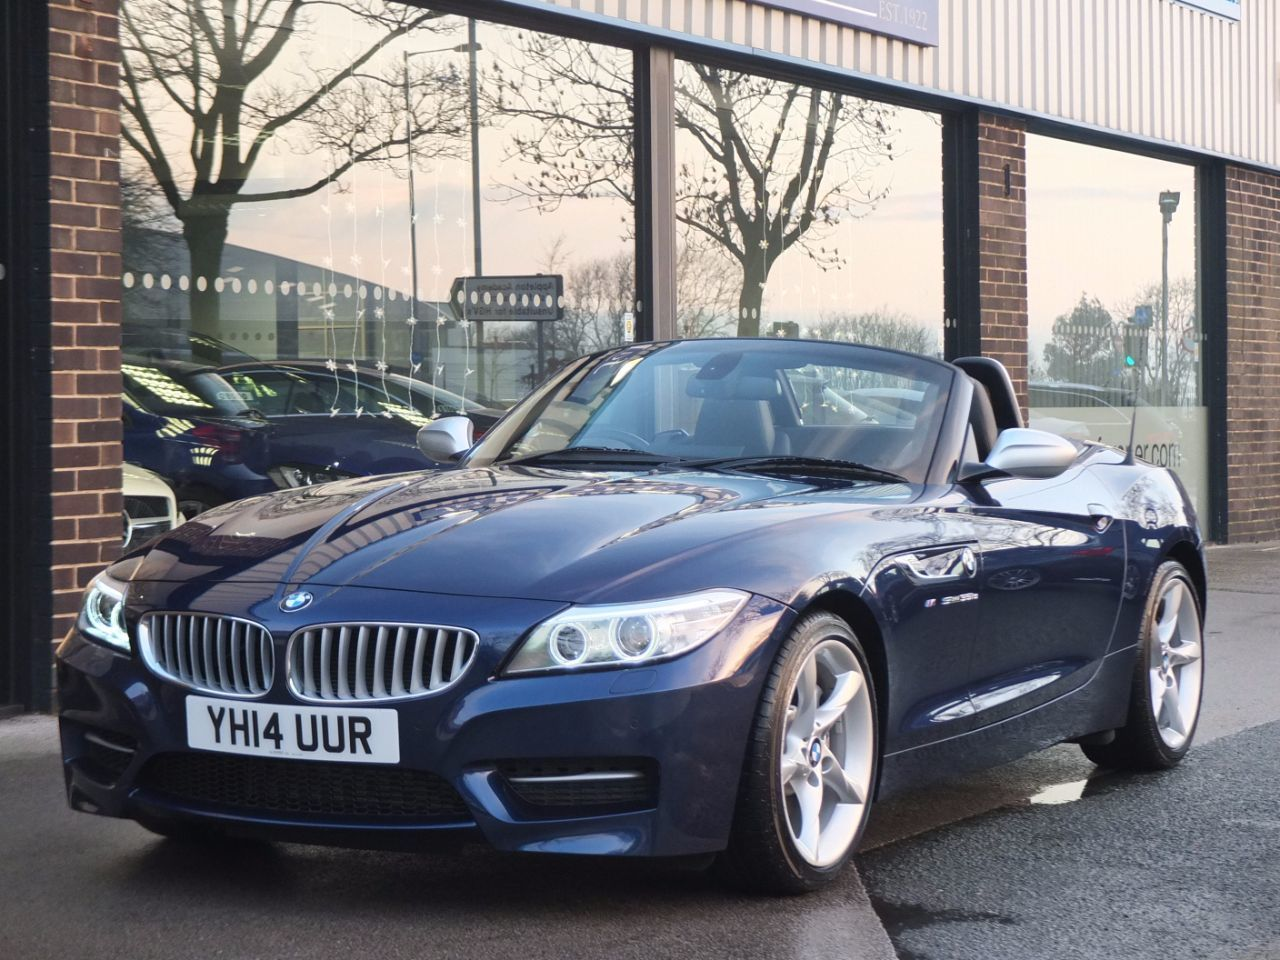 BMW Z4 3.0 35is sDrive DCT 340ps Convertible Petrol Deep Sea Blue Metallic